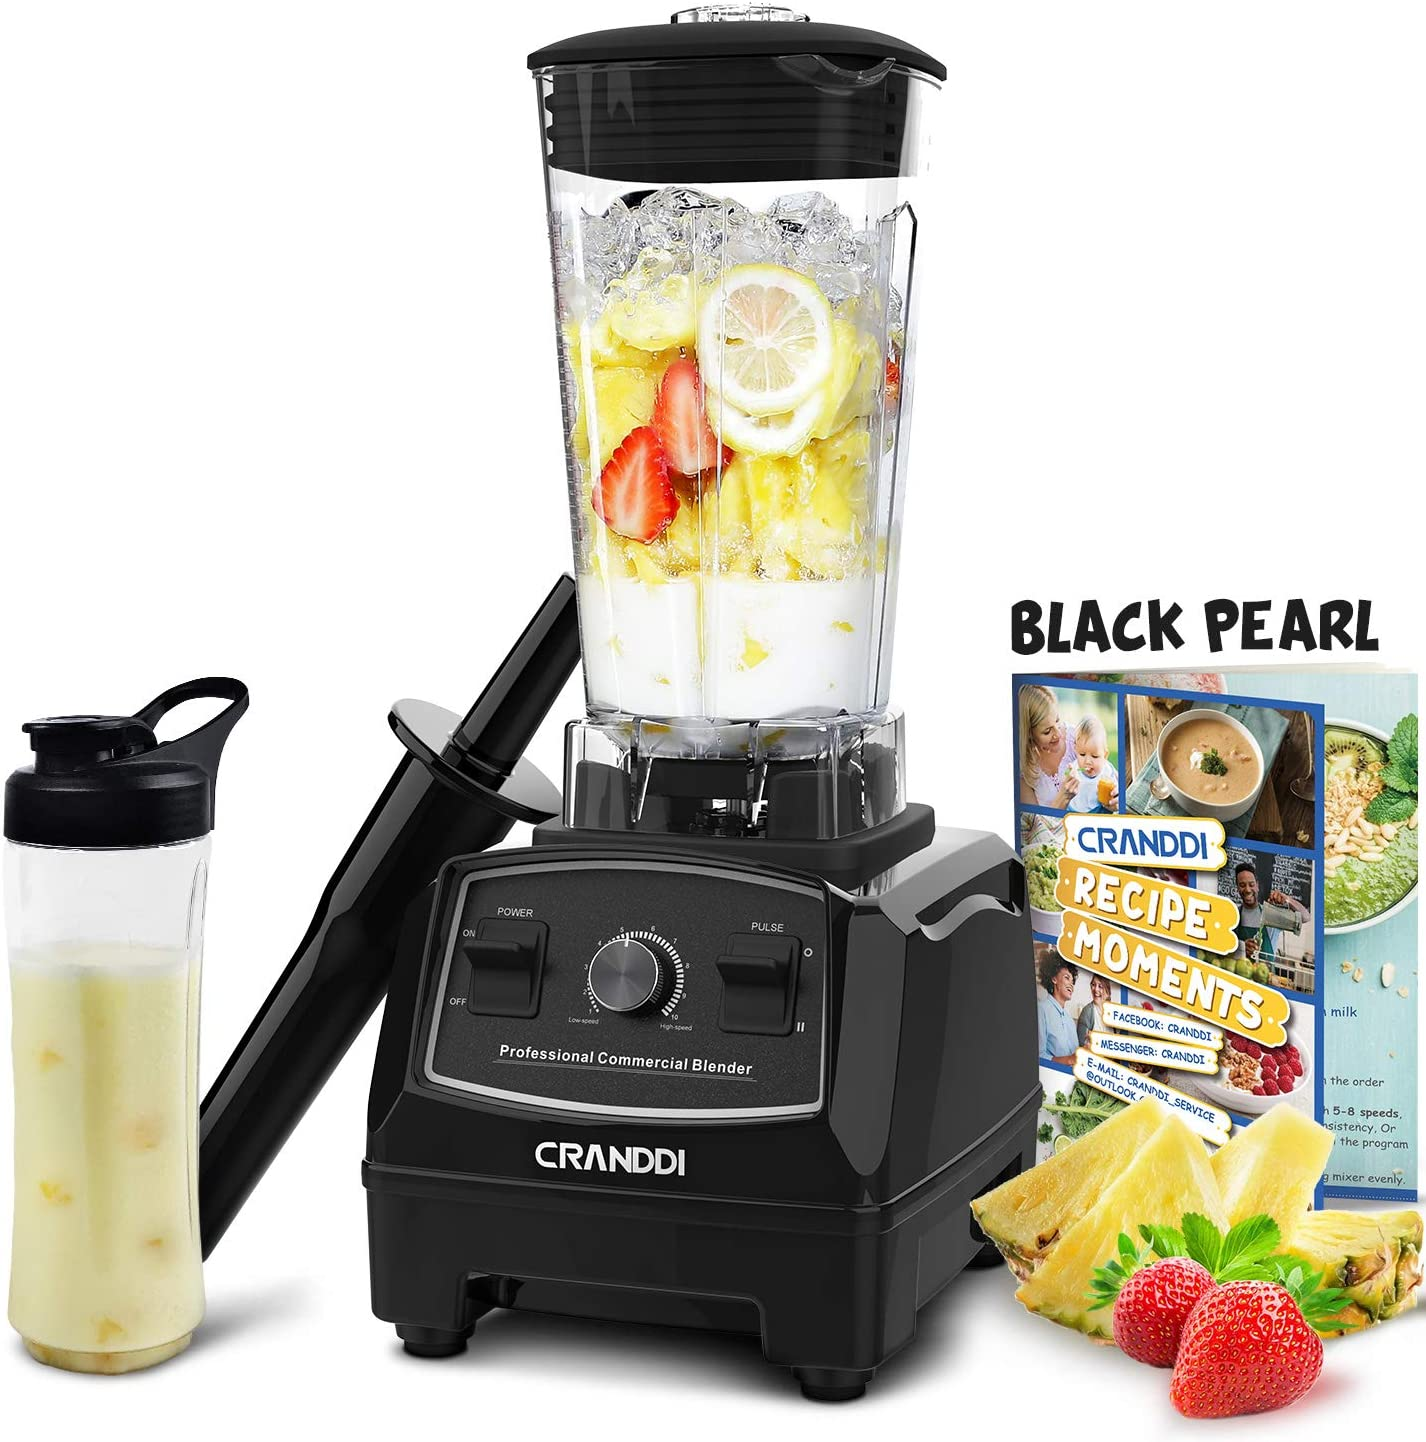 CRANDDI Countertop Blender